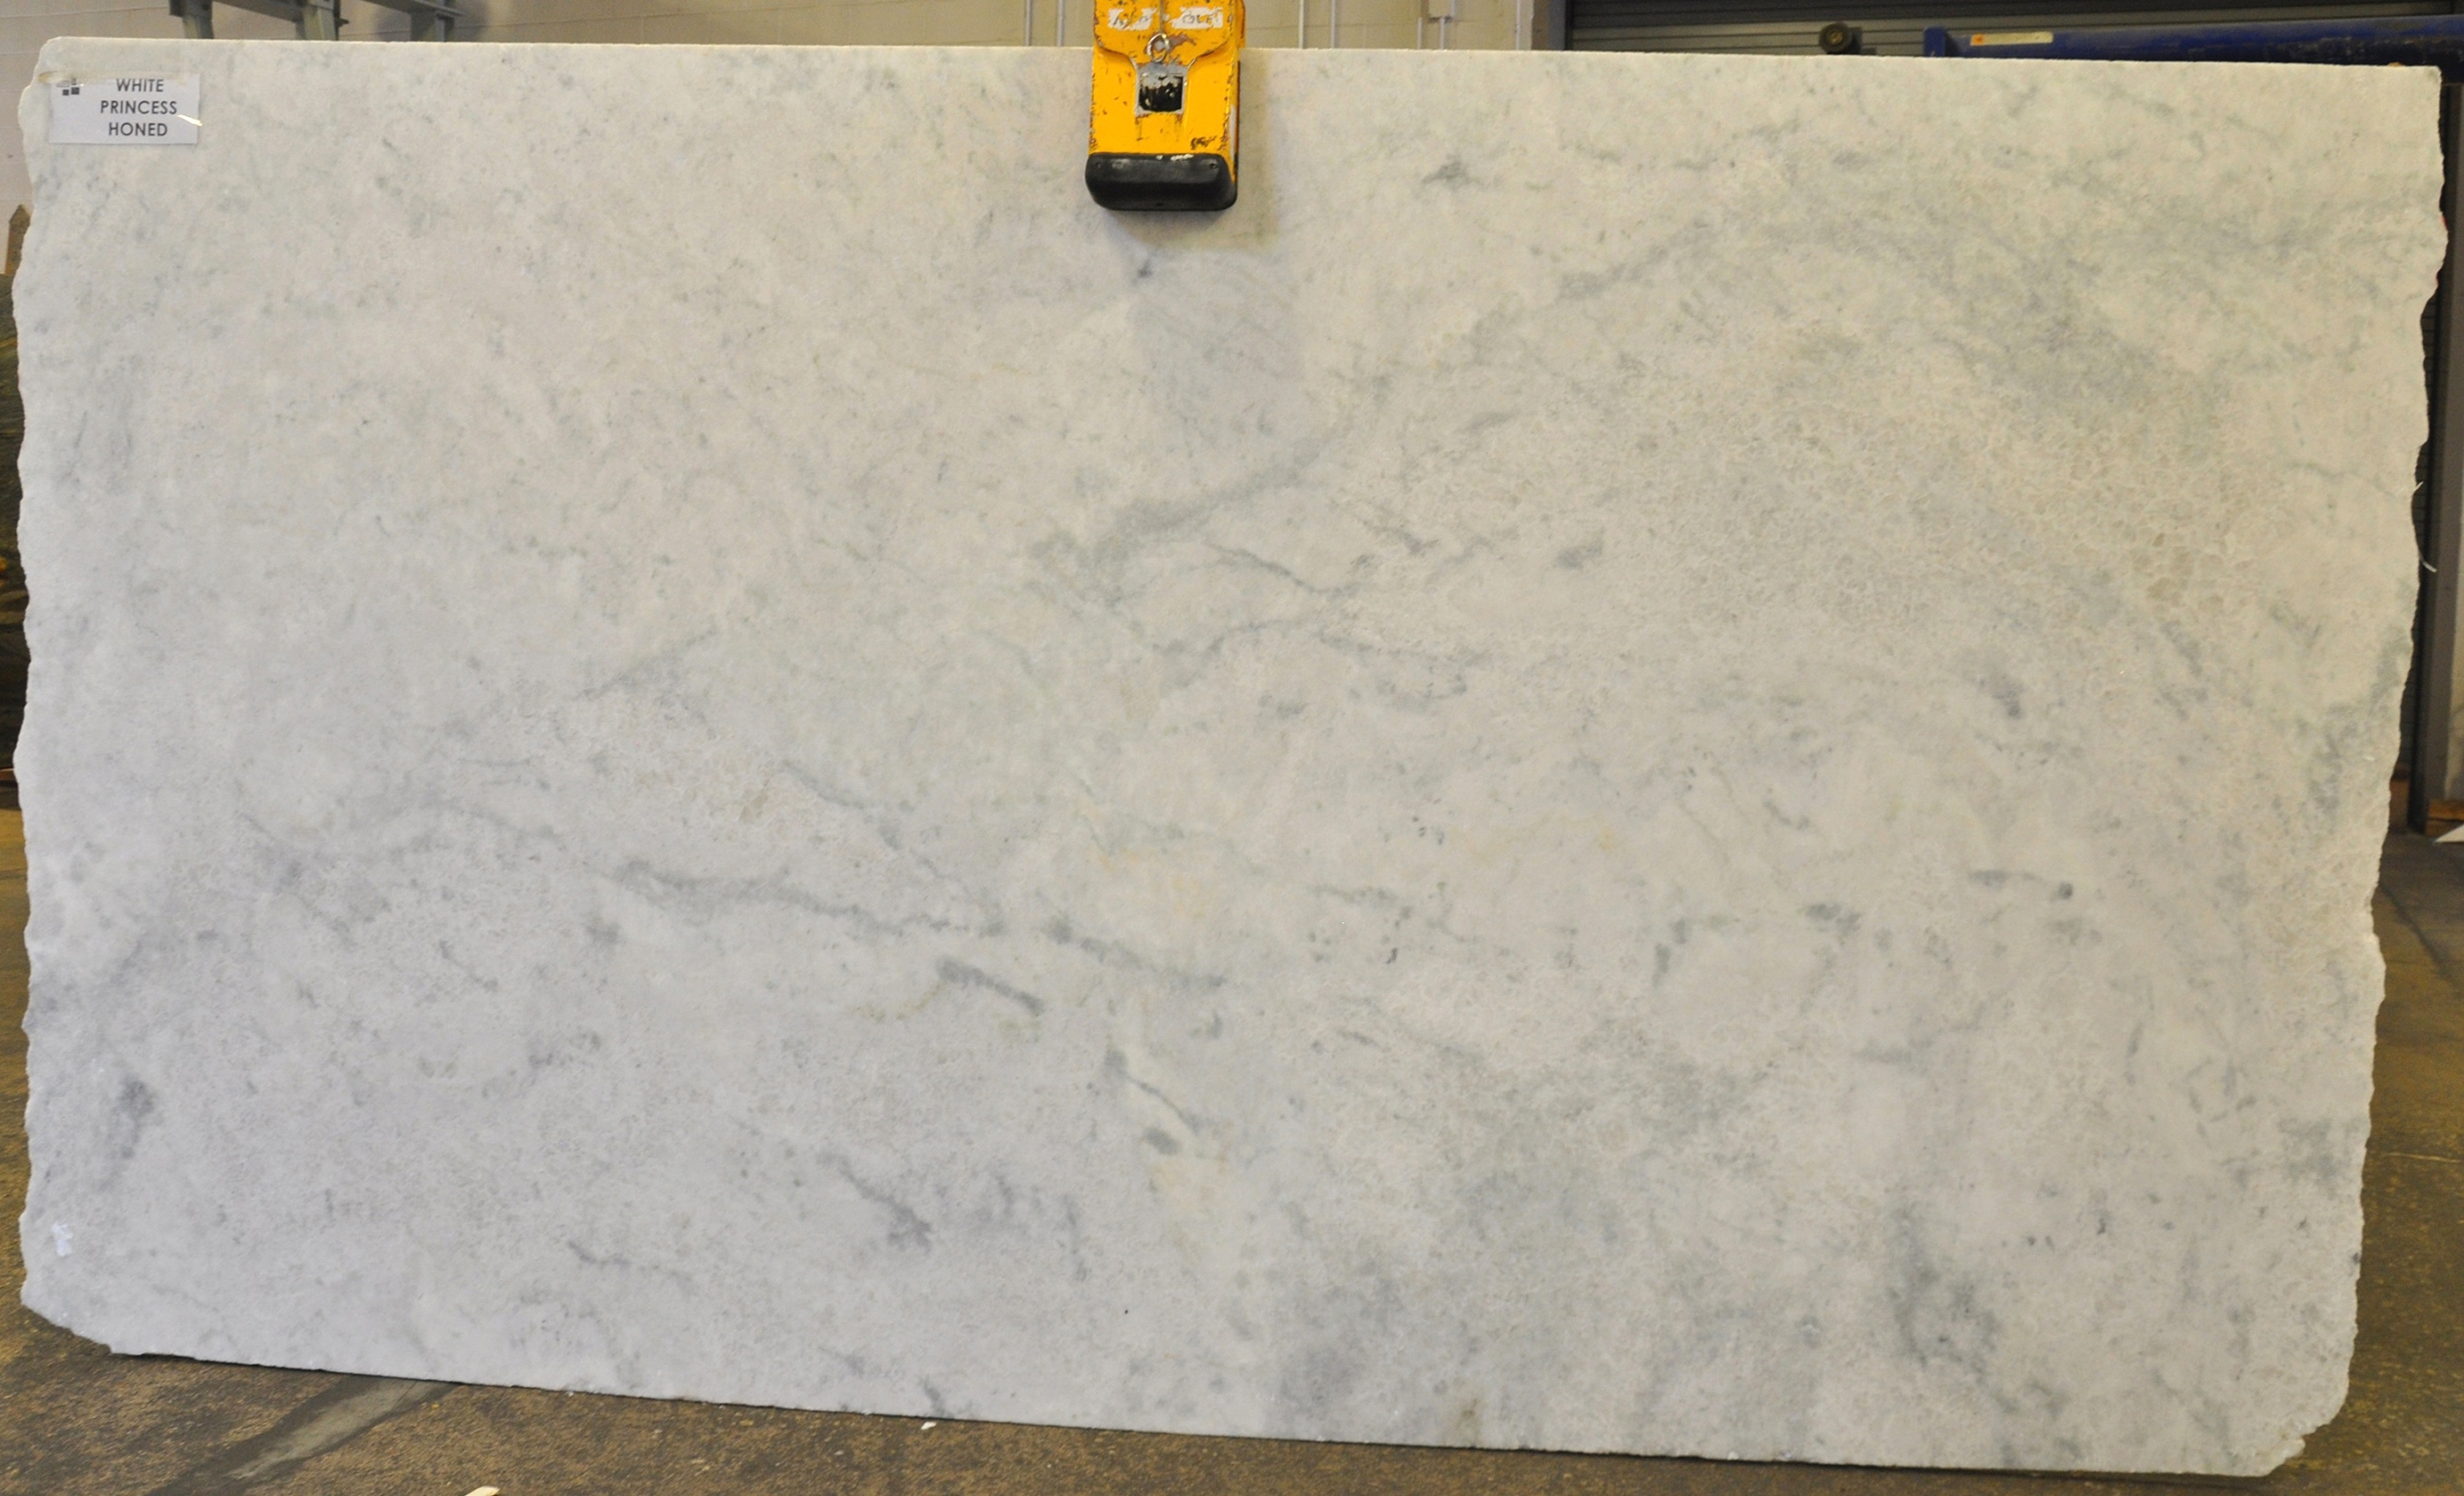 Clean White Princess Granite – Madison Art Center Design